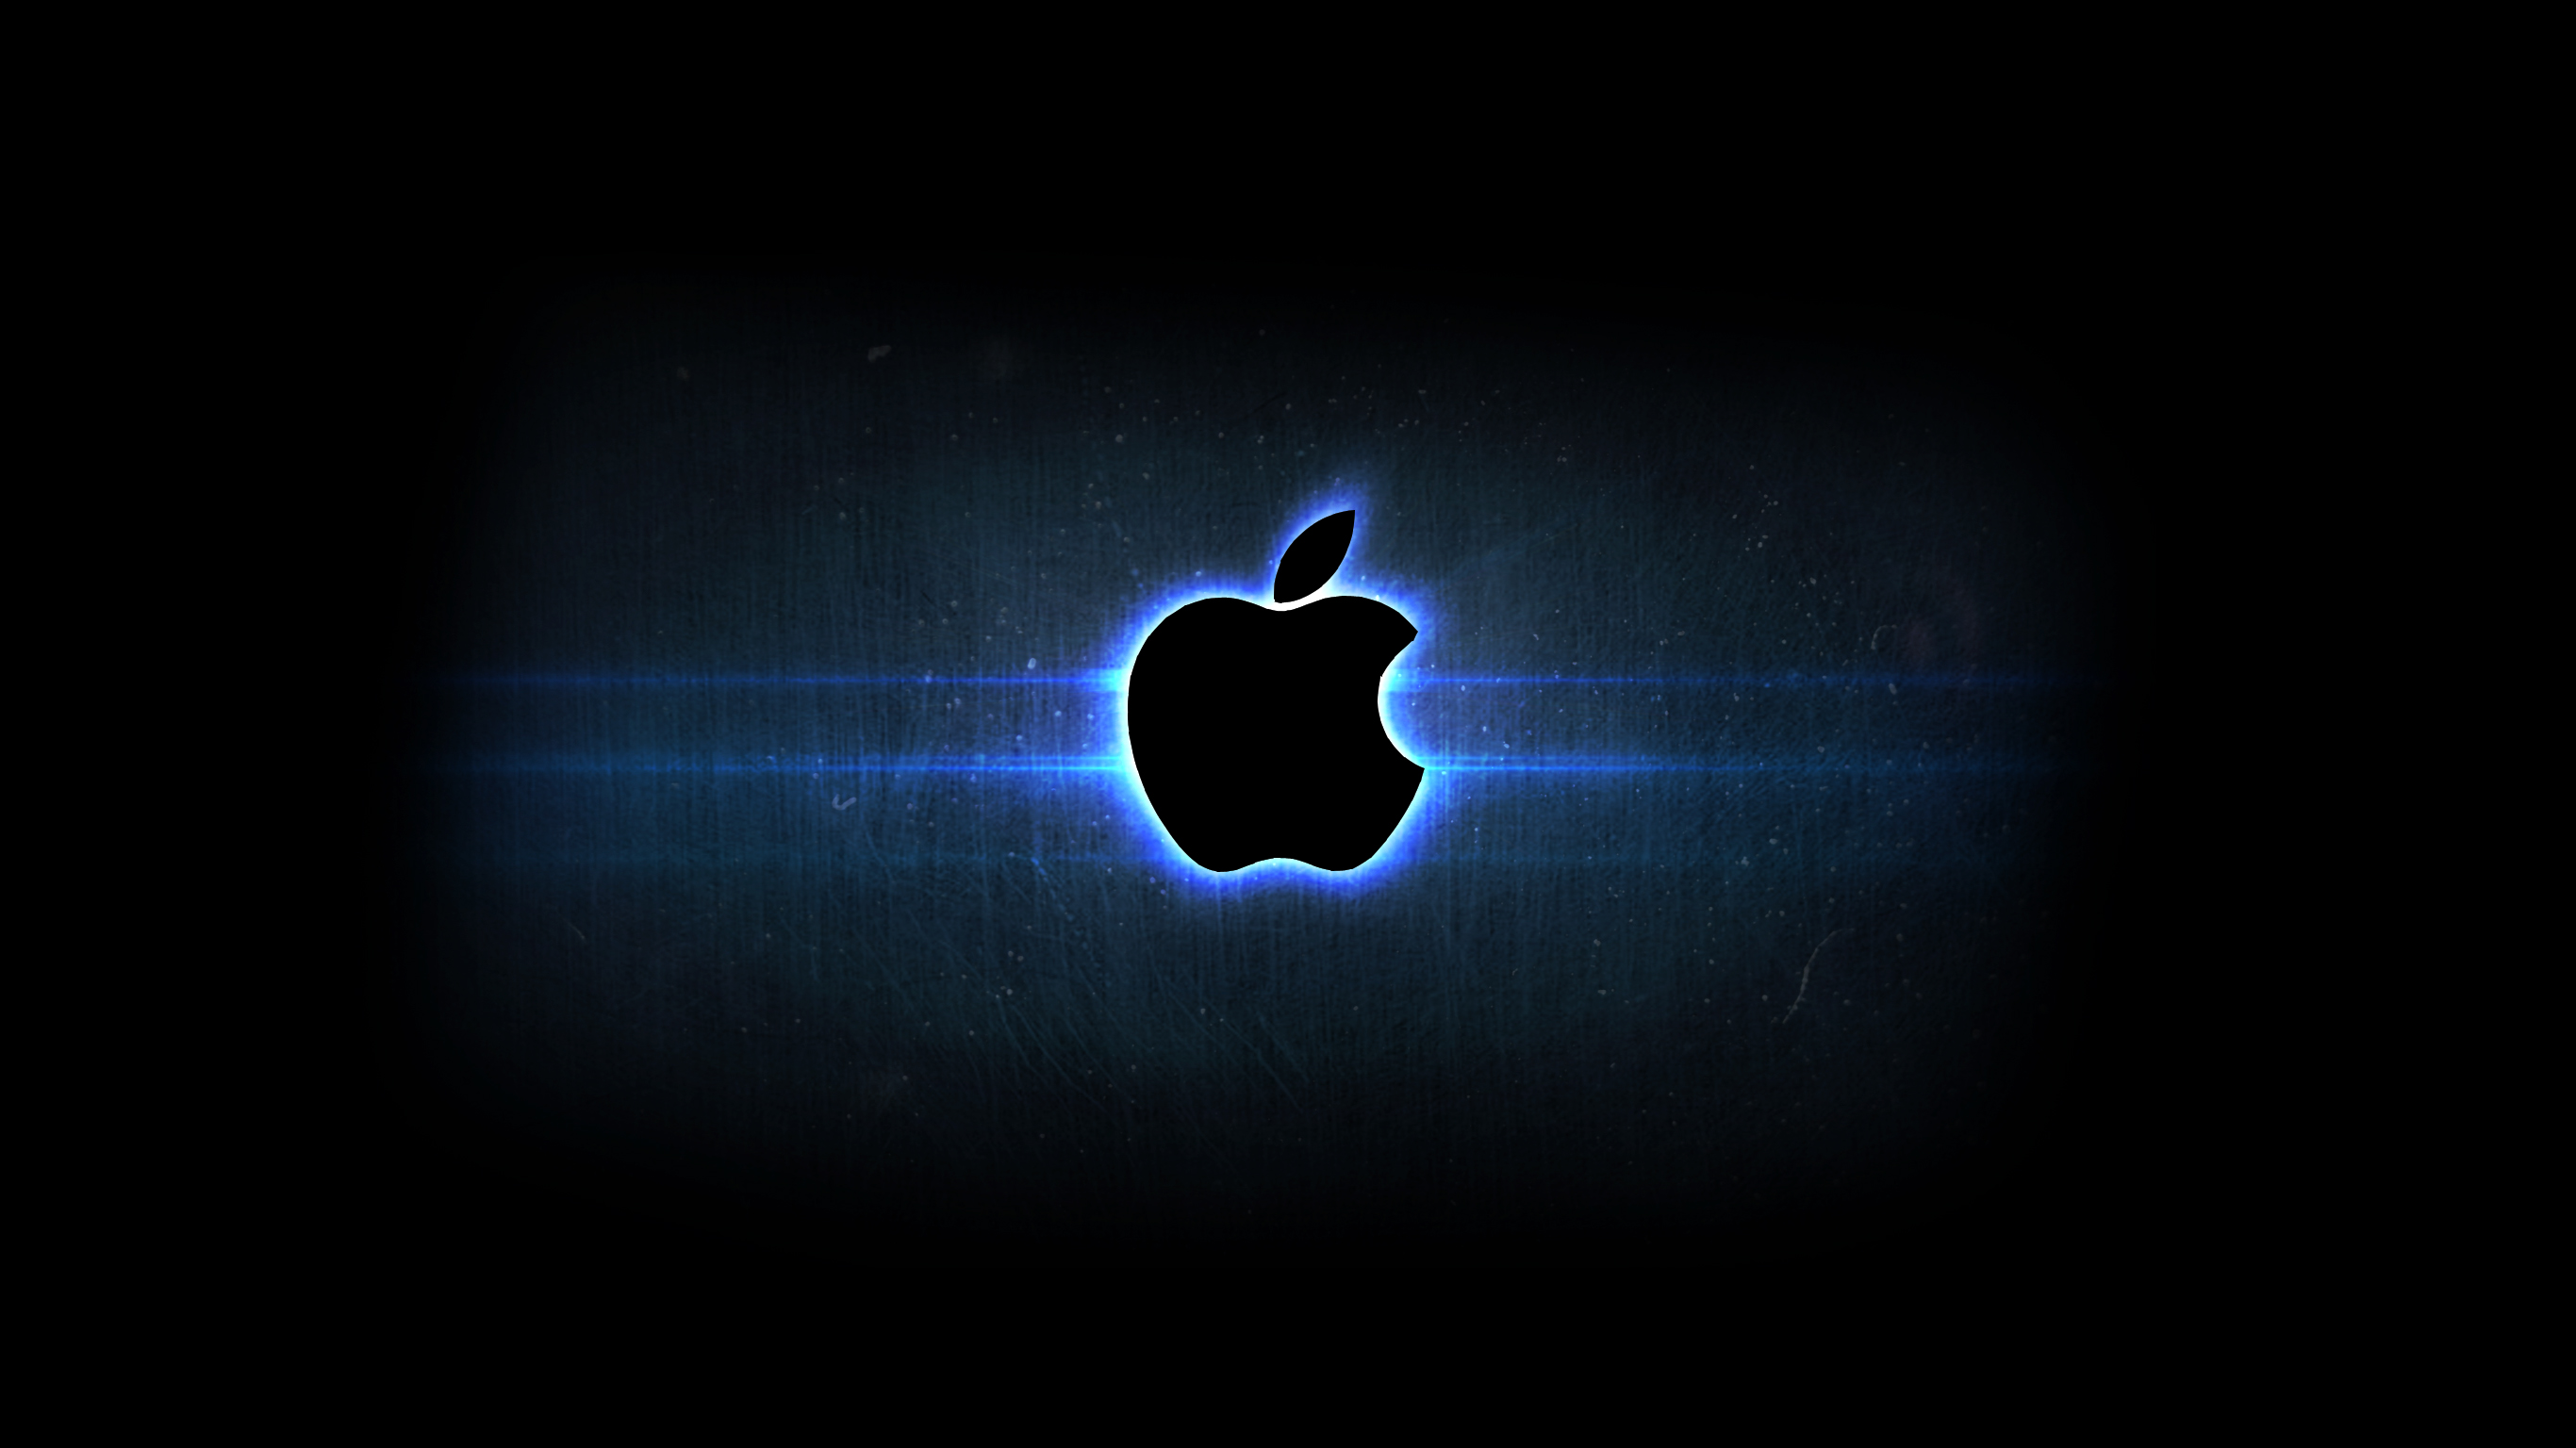 Apple WallpaperBackground by TimSaunders 2732x1536